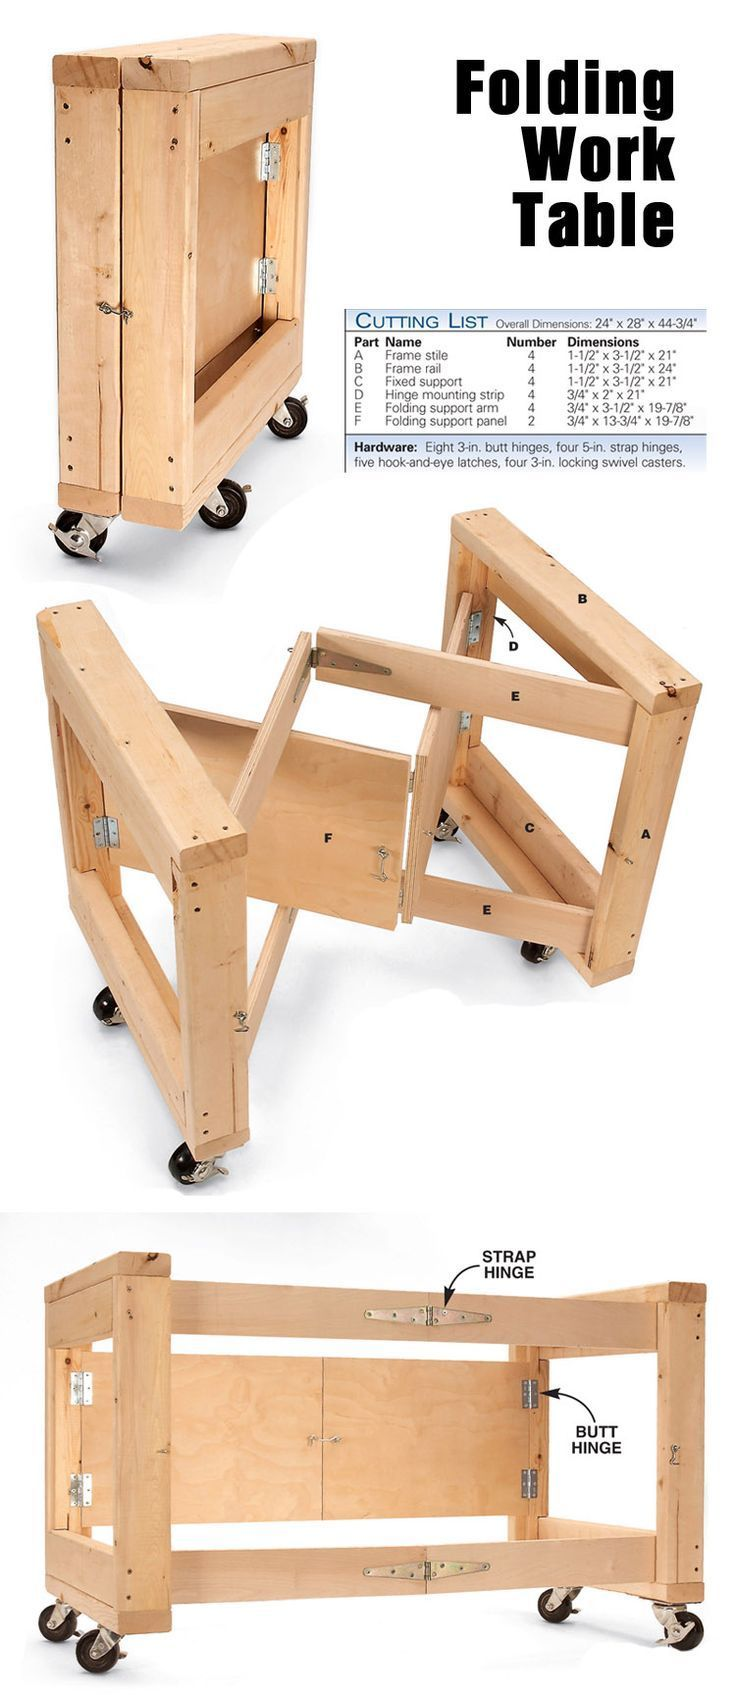 Space Saving Folding Work Table  Http://www.popularwoodworking.com/projects/aw Extra 4512 Folding Table Base: